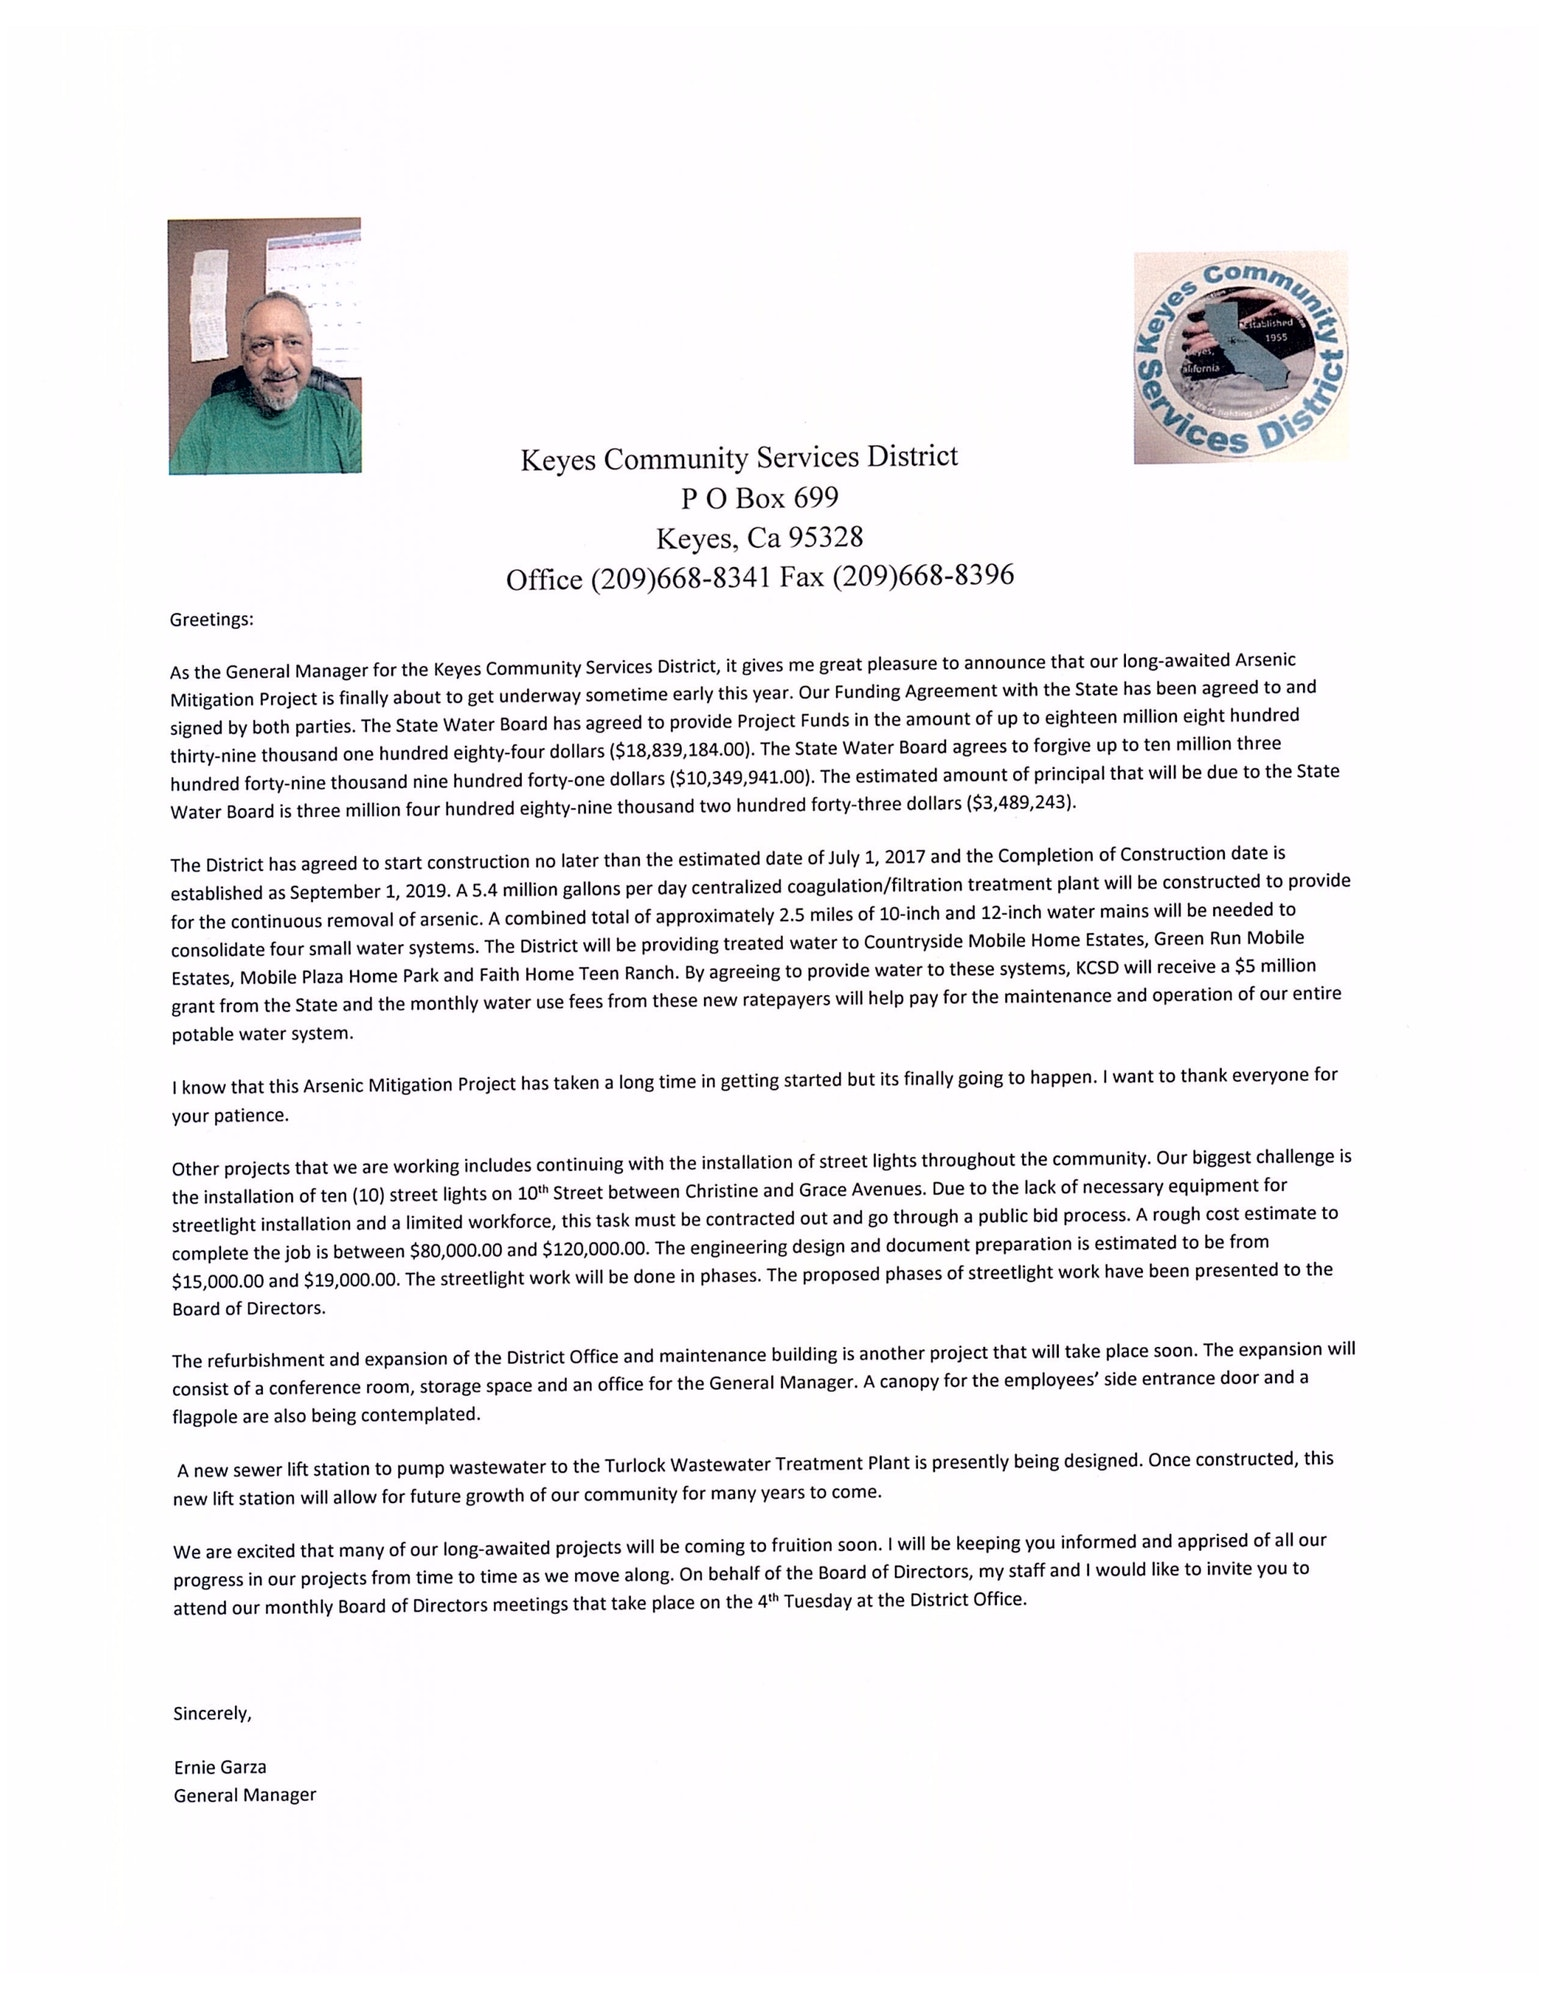 keyes community services district general manager letter to the community of keyes